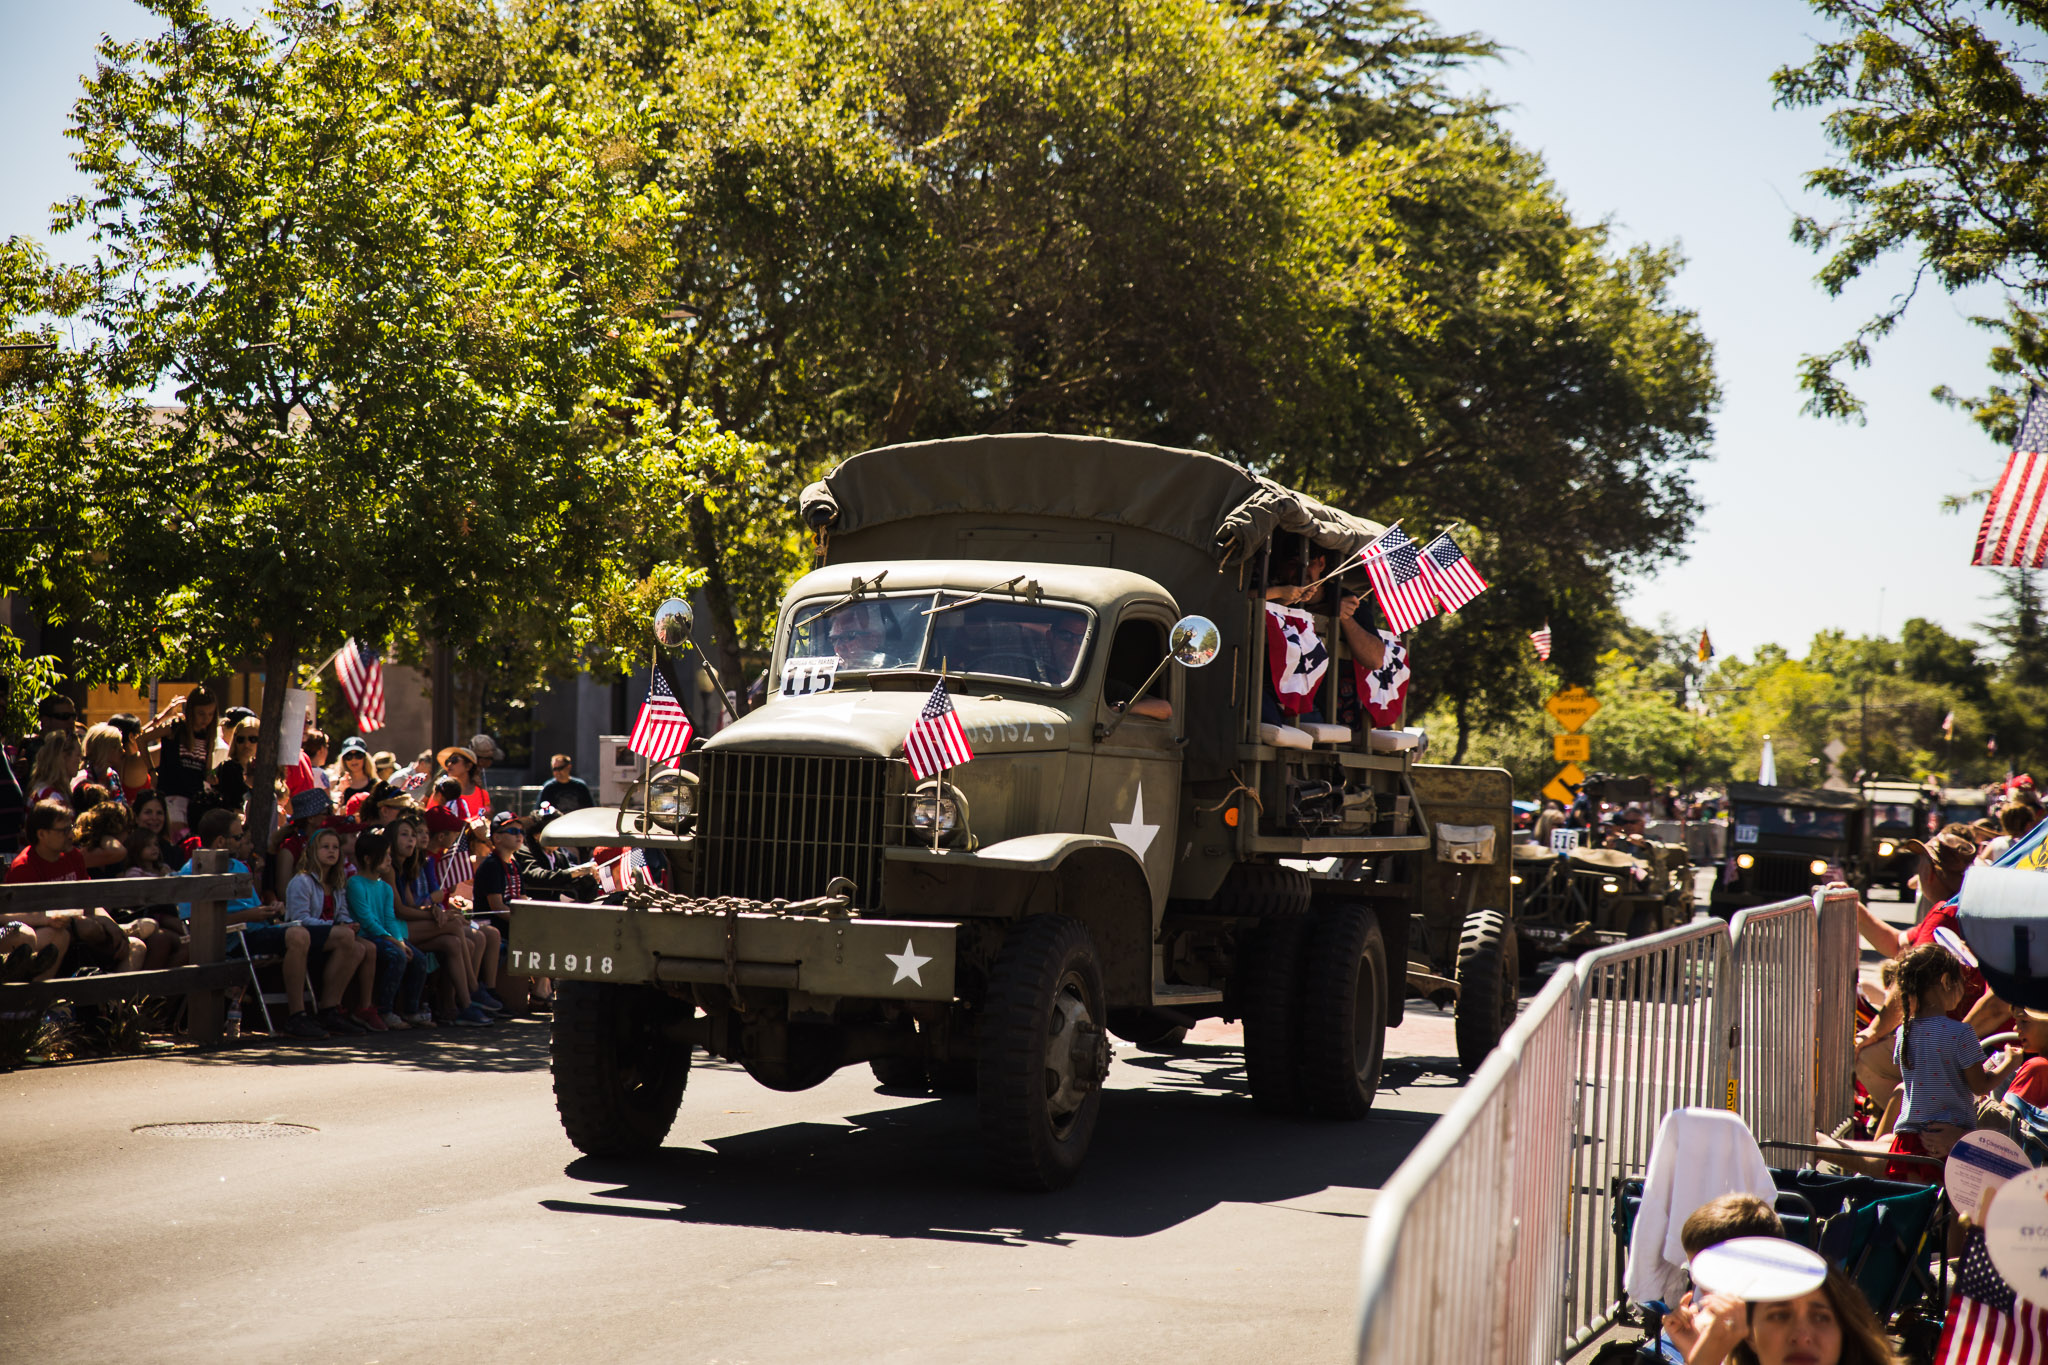 Archer_Inspired_Photography_Morgan_Hill_California_4th_of_july_parade-123.jpg